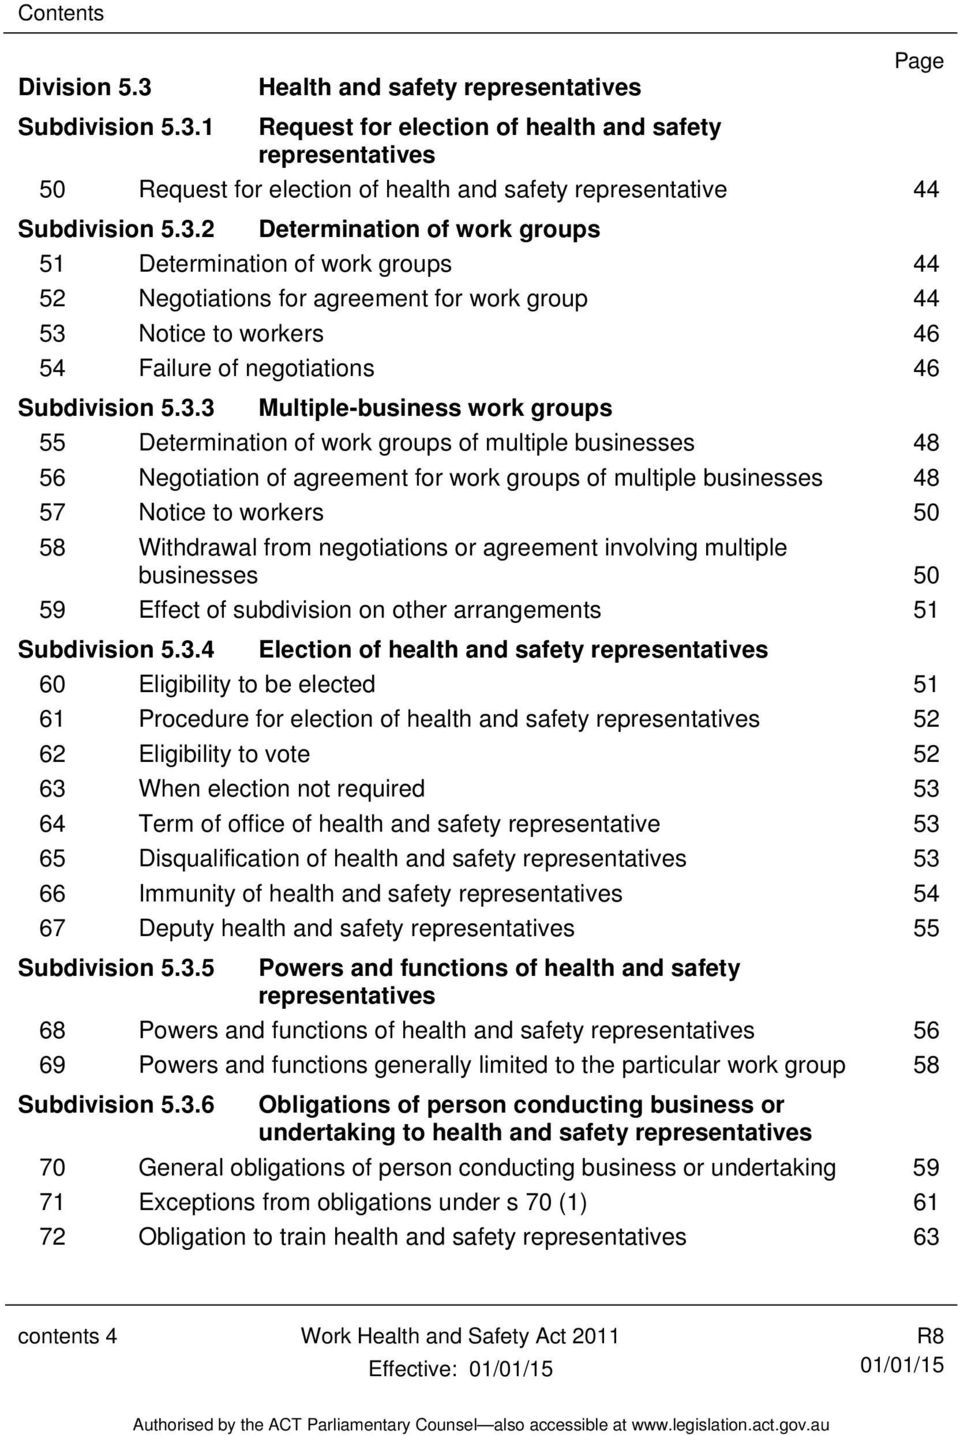 Multiple-business work groups 55 Determination of work groups of multiple businesses 48 56 Negotiation of agreement for work groups of multiple businesses 48 57 Notice to workers 50 58 Withdrawal